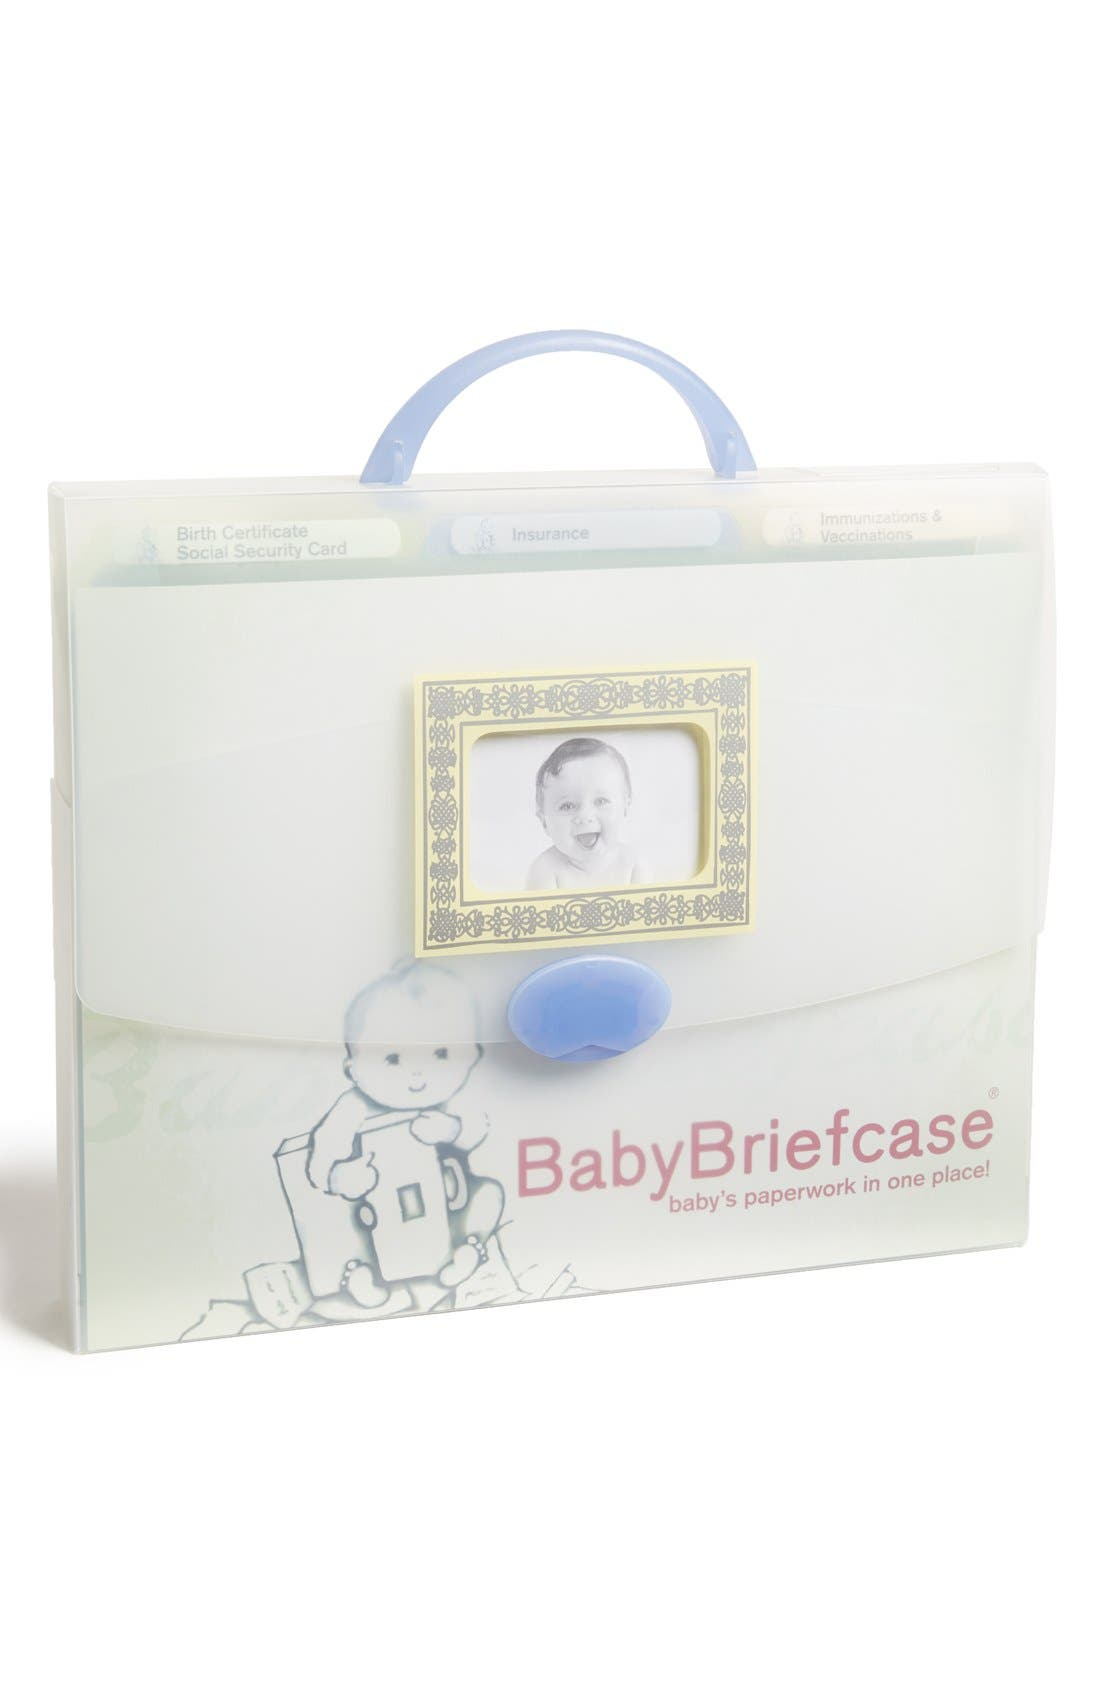 BabyBriefcase® Document Organizer